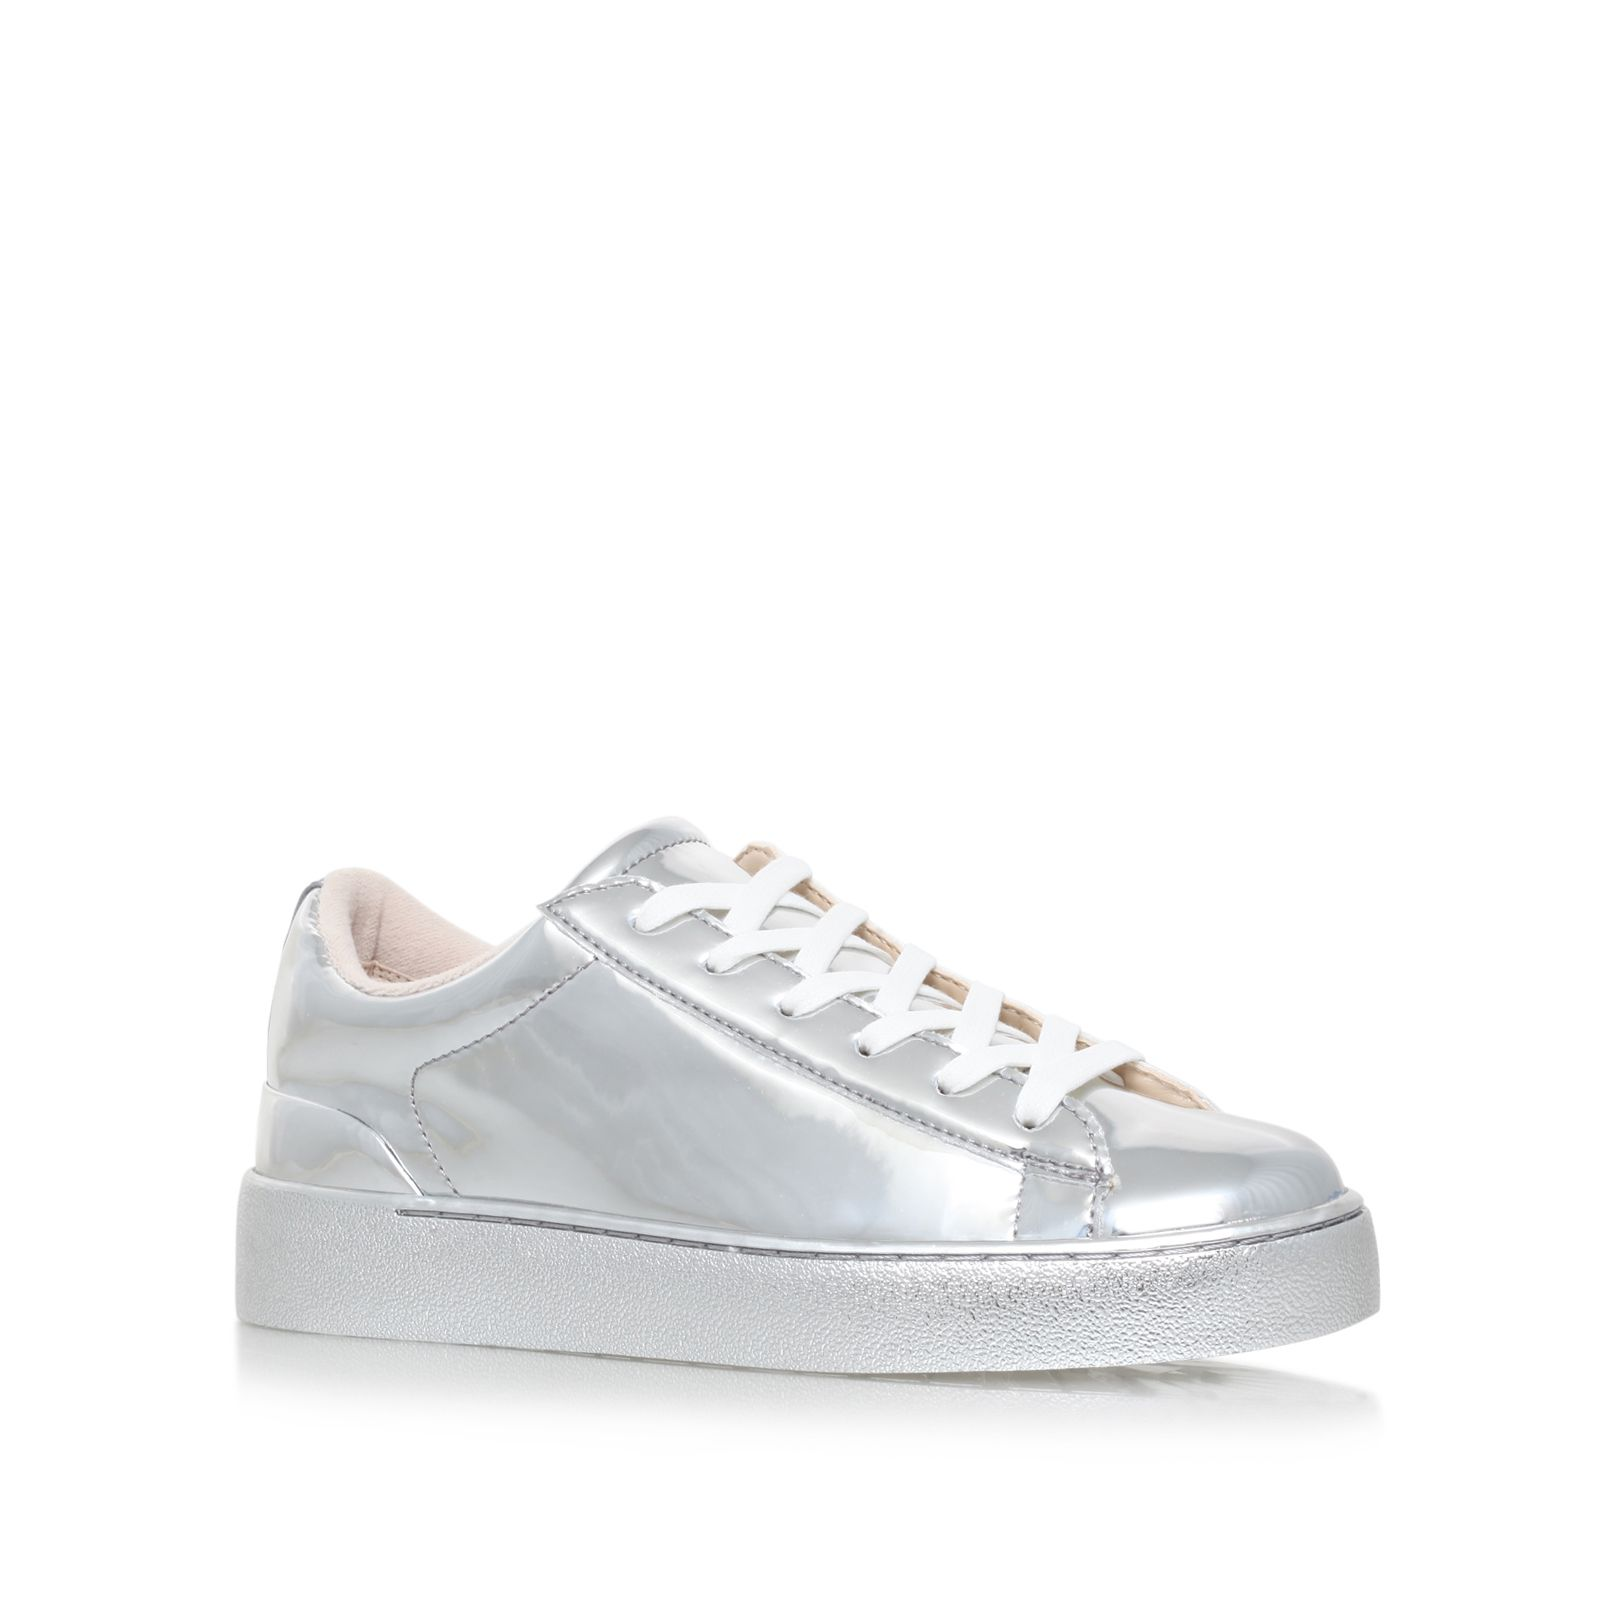 Nine West Nine West Palyla3 flat lace up sneakers, Silver